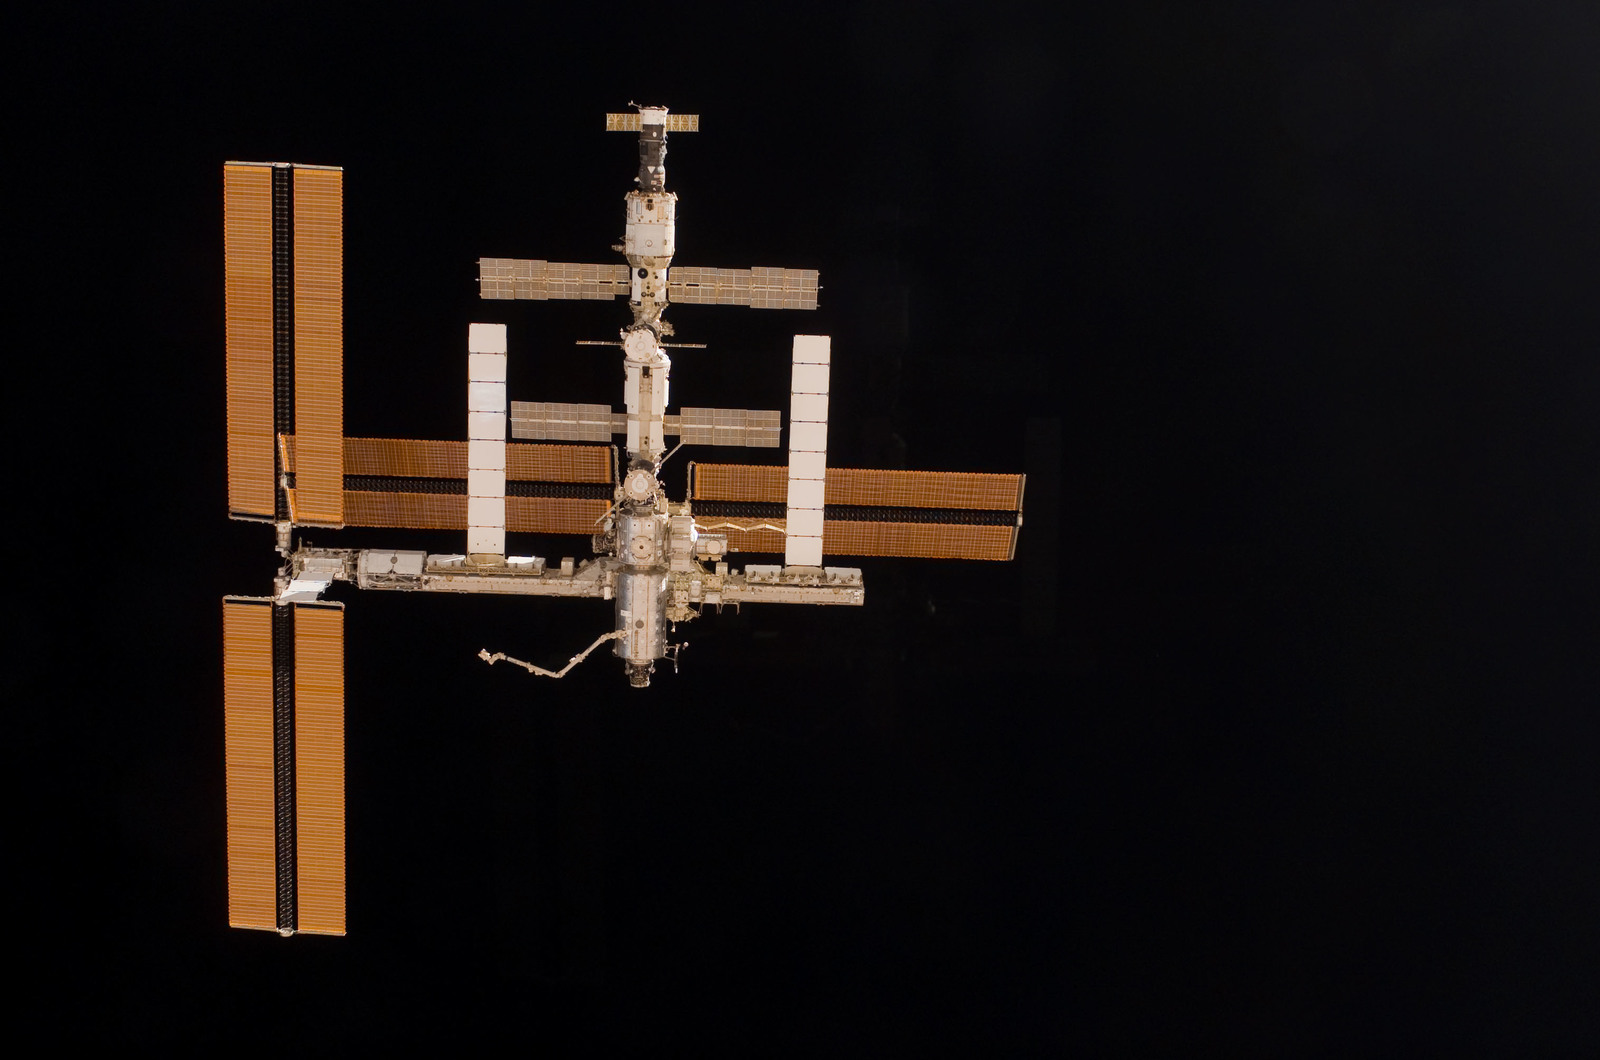 S115E06722 - STS-115 - Overall exterior view of the ISS during undocking and Flyaround Operations for STS-115 Space Shuttle Atlantis